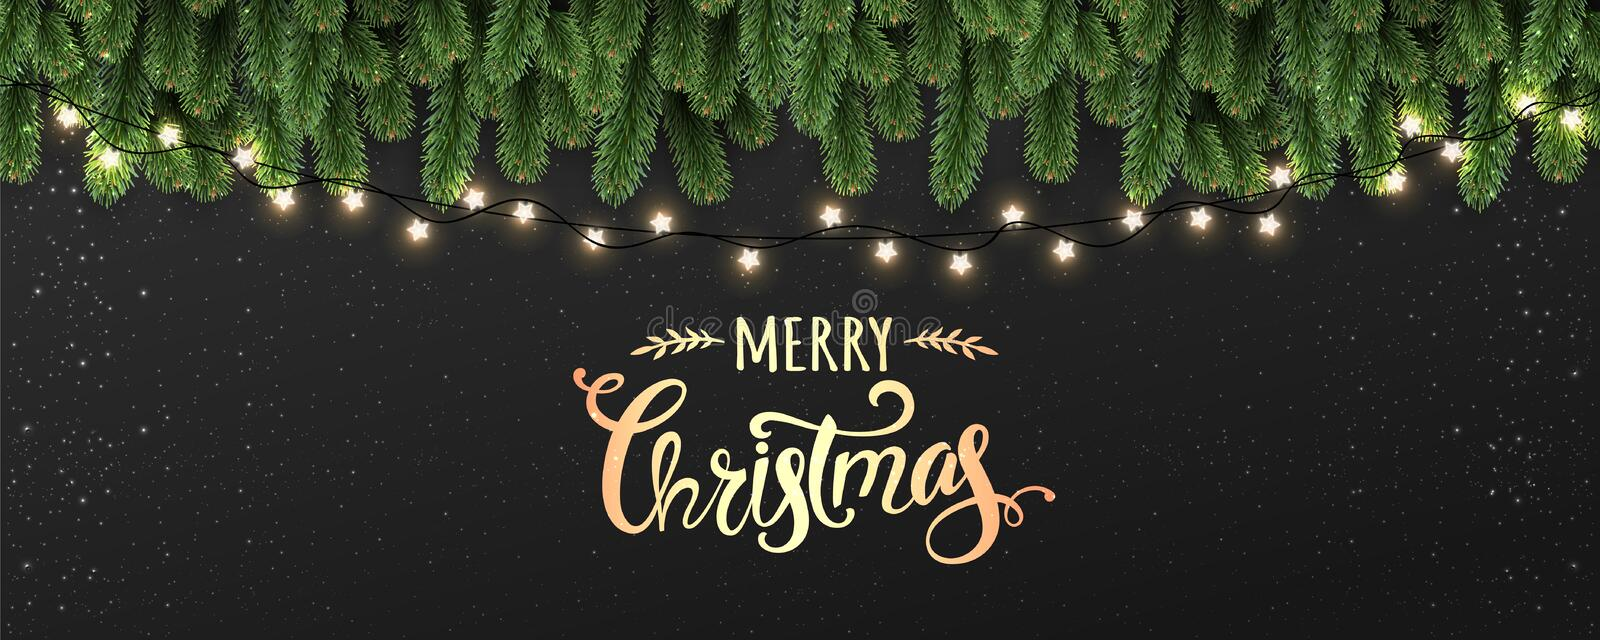 Merry Christmas Typographical on black background with tree branches decorated with stars, lights, snowflakes. vector illustration